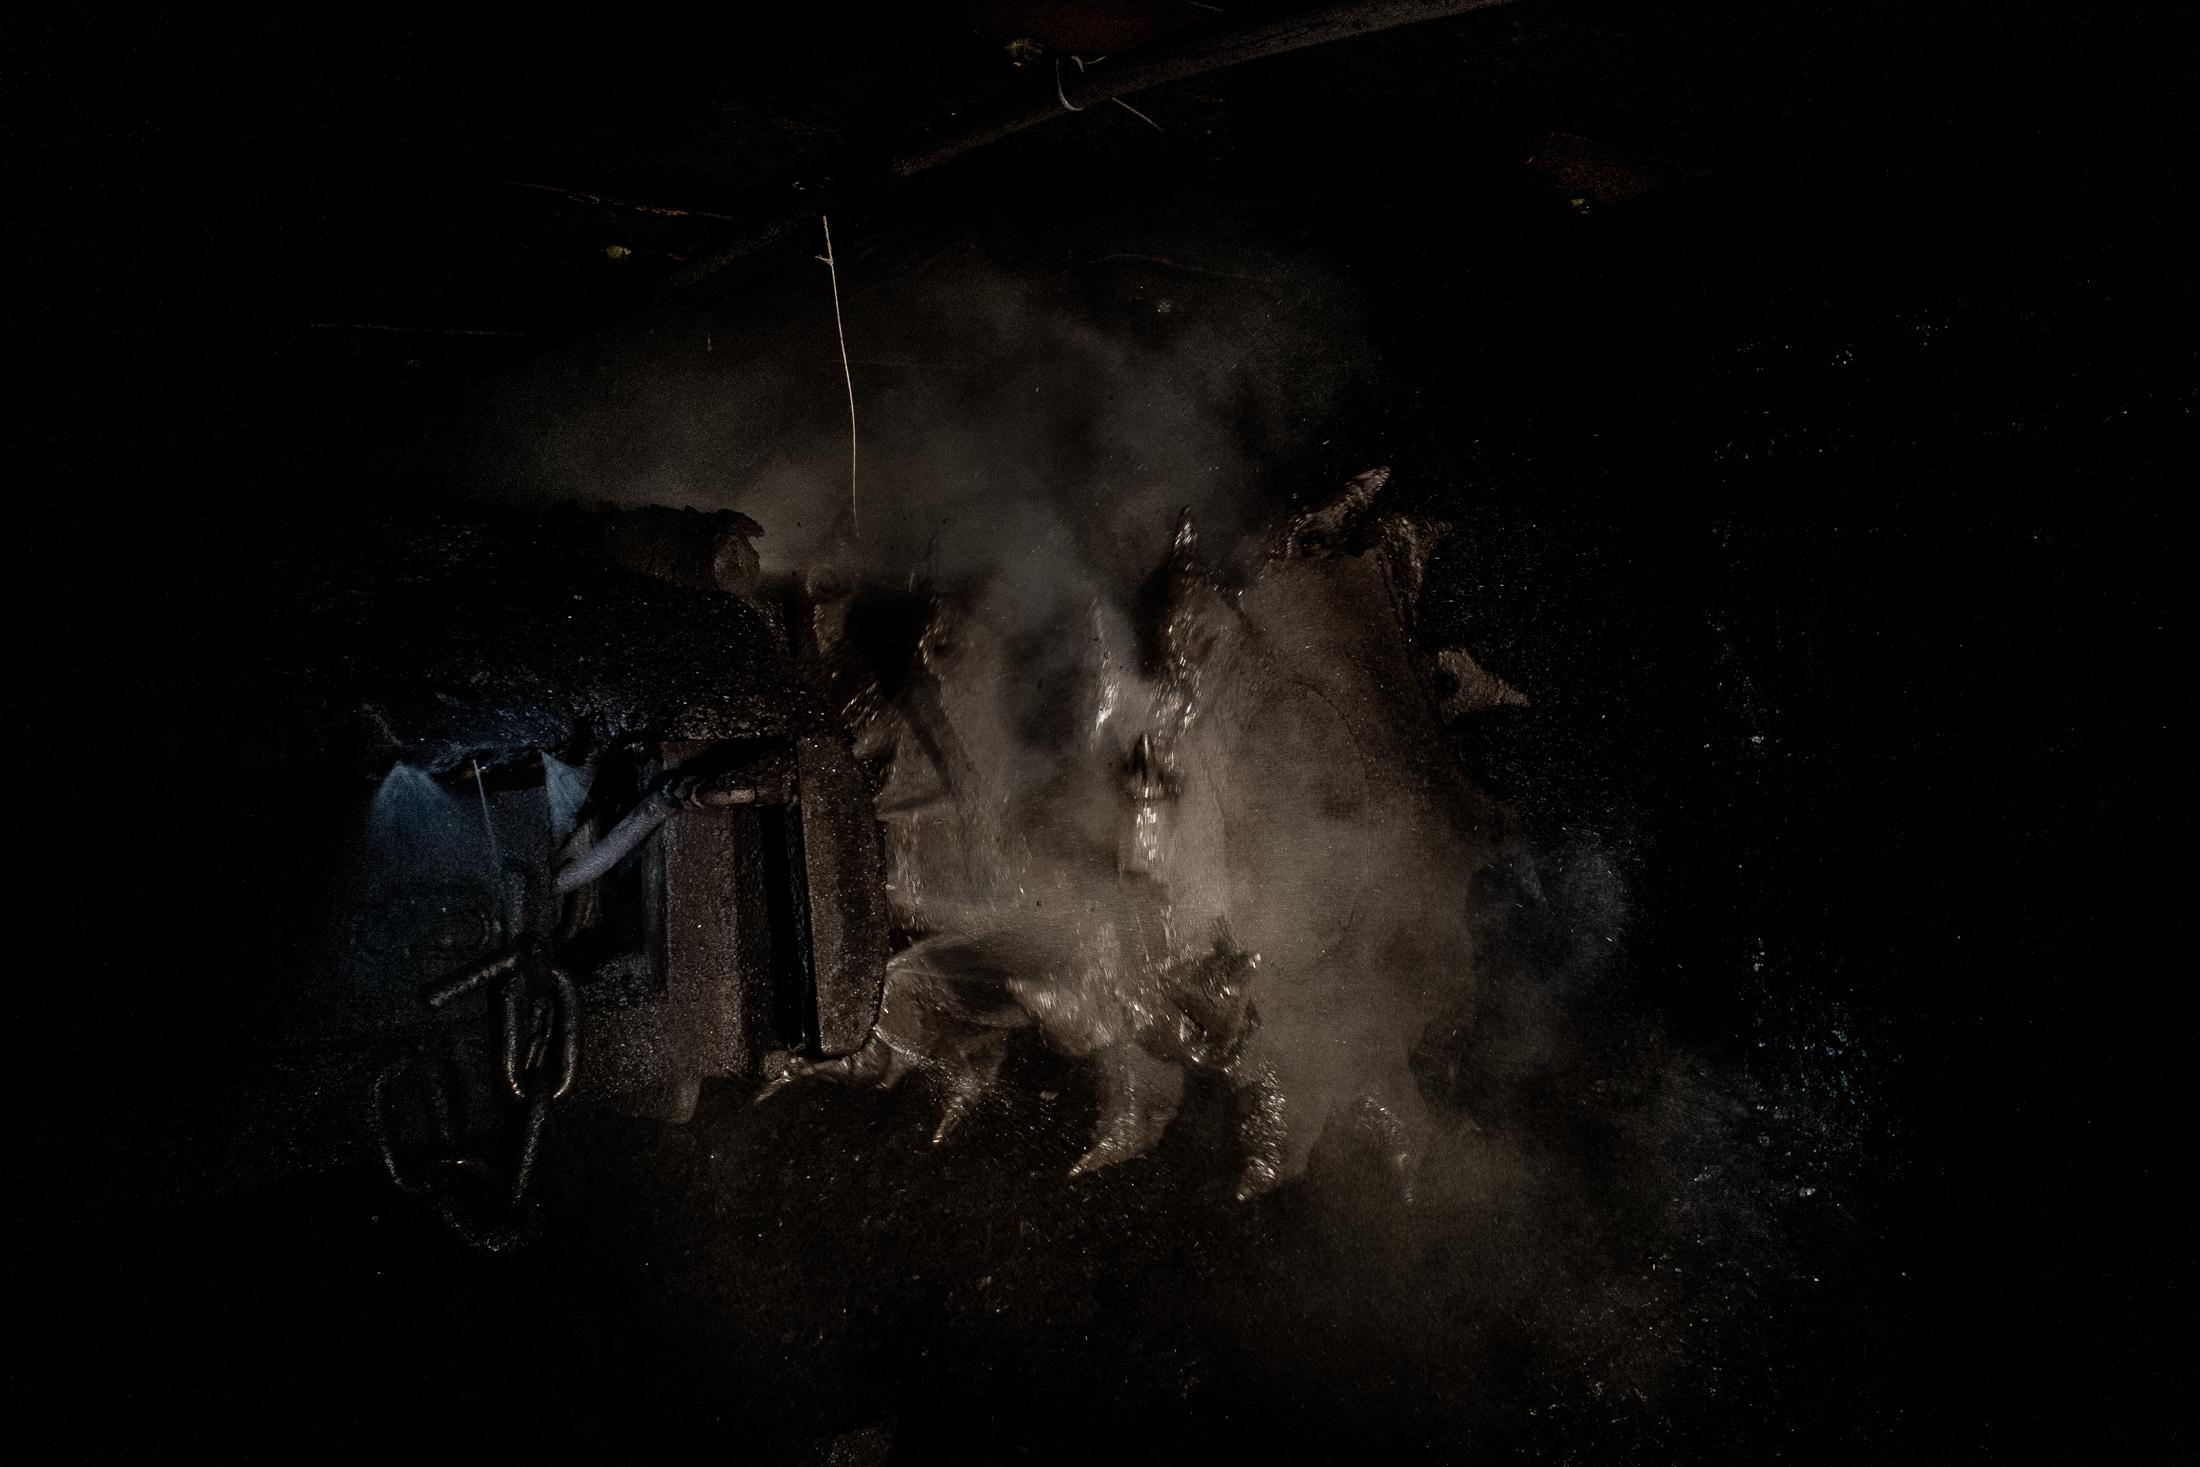 A machine clears its way into an underground coal mine. In the Brazilian energy matrix, coal has little presence, but in the world it is still a significant source of energy. With climate change these energy sources need to be discontinued.